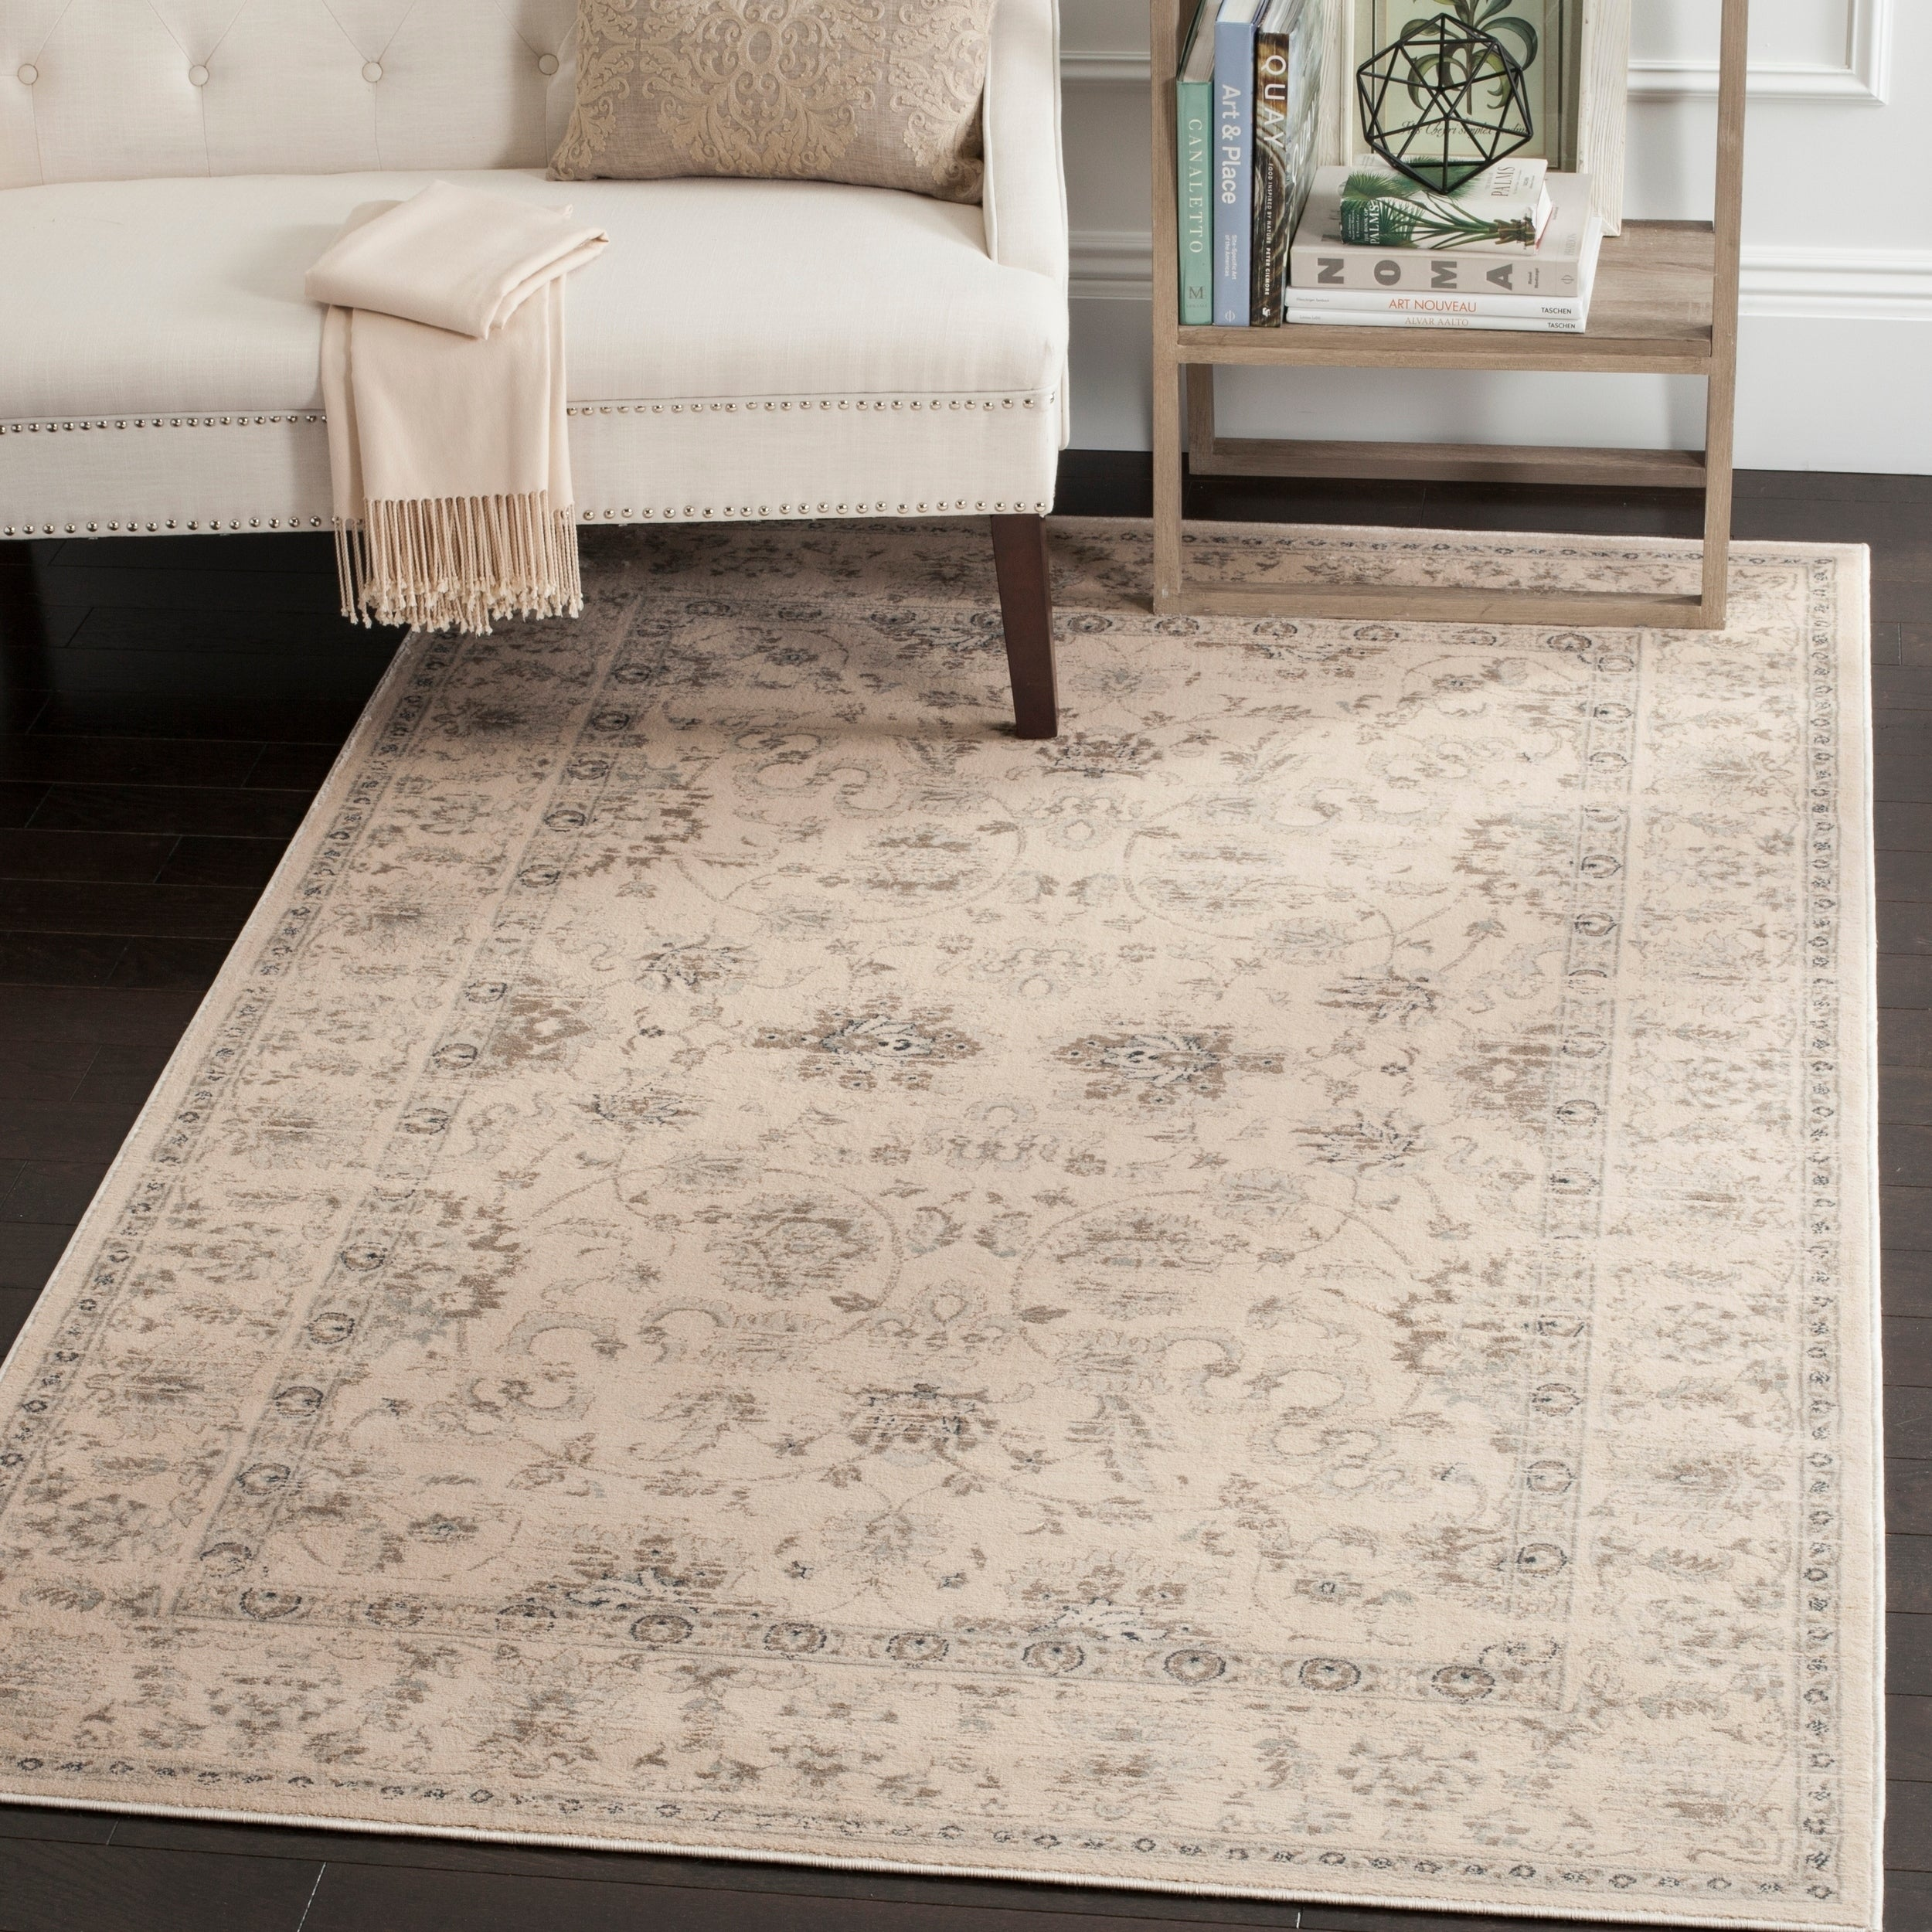 Shop Safavieh Vintage Oriental Cream Distressed Rug 8 X 11 On D Island Casual Wrinkle Sale Free Shipping Today 9720246